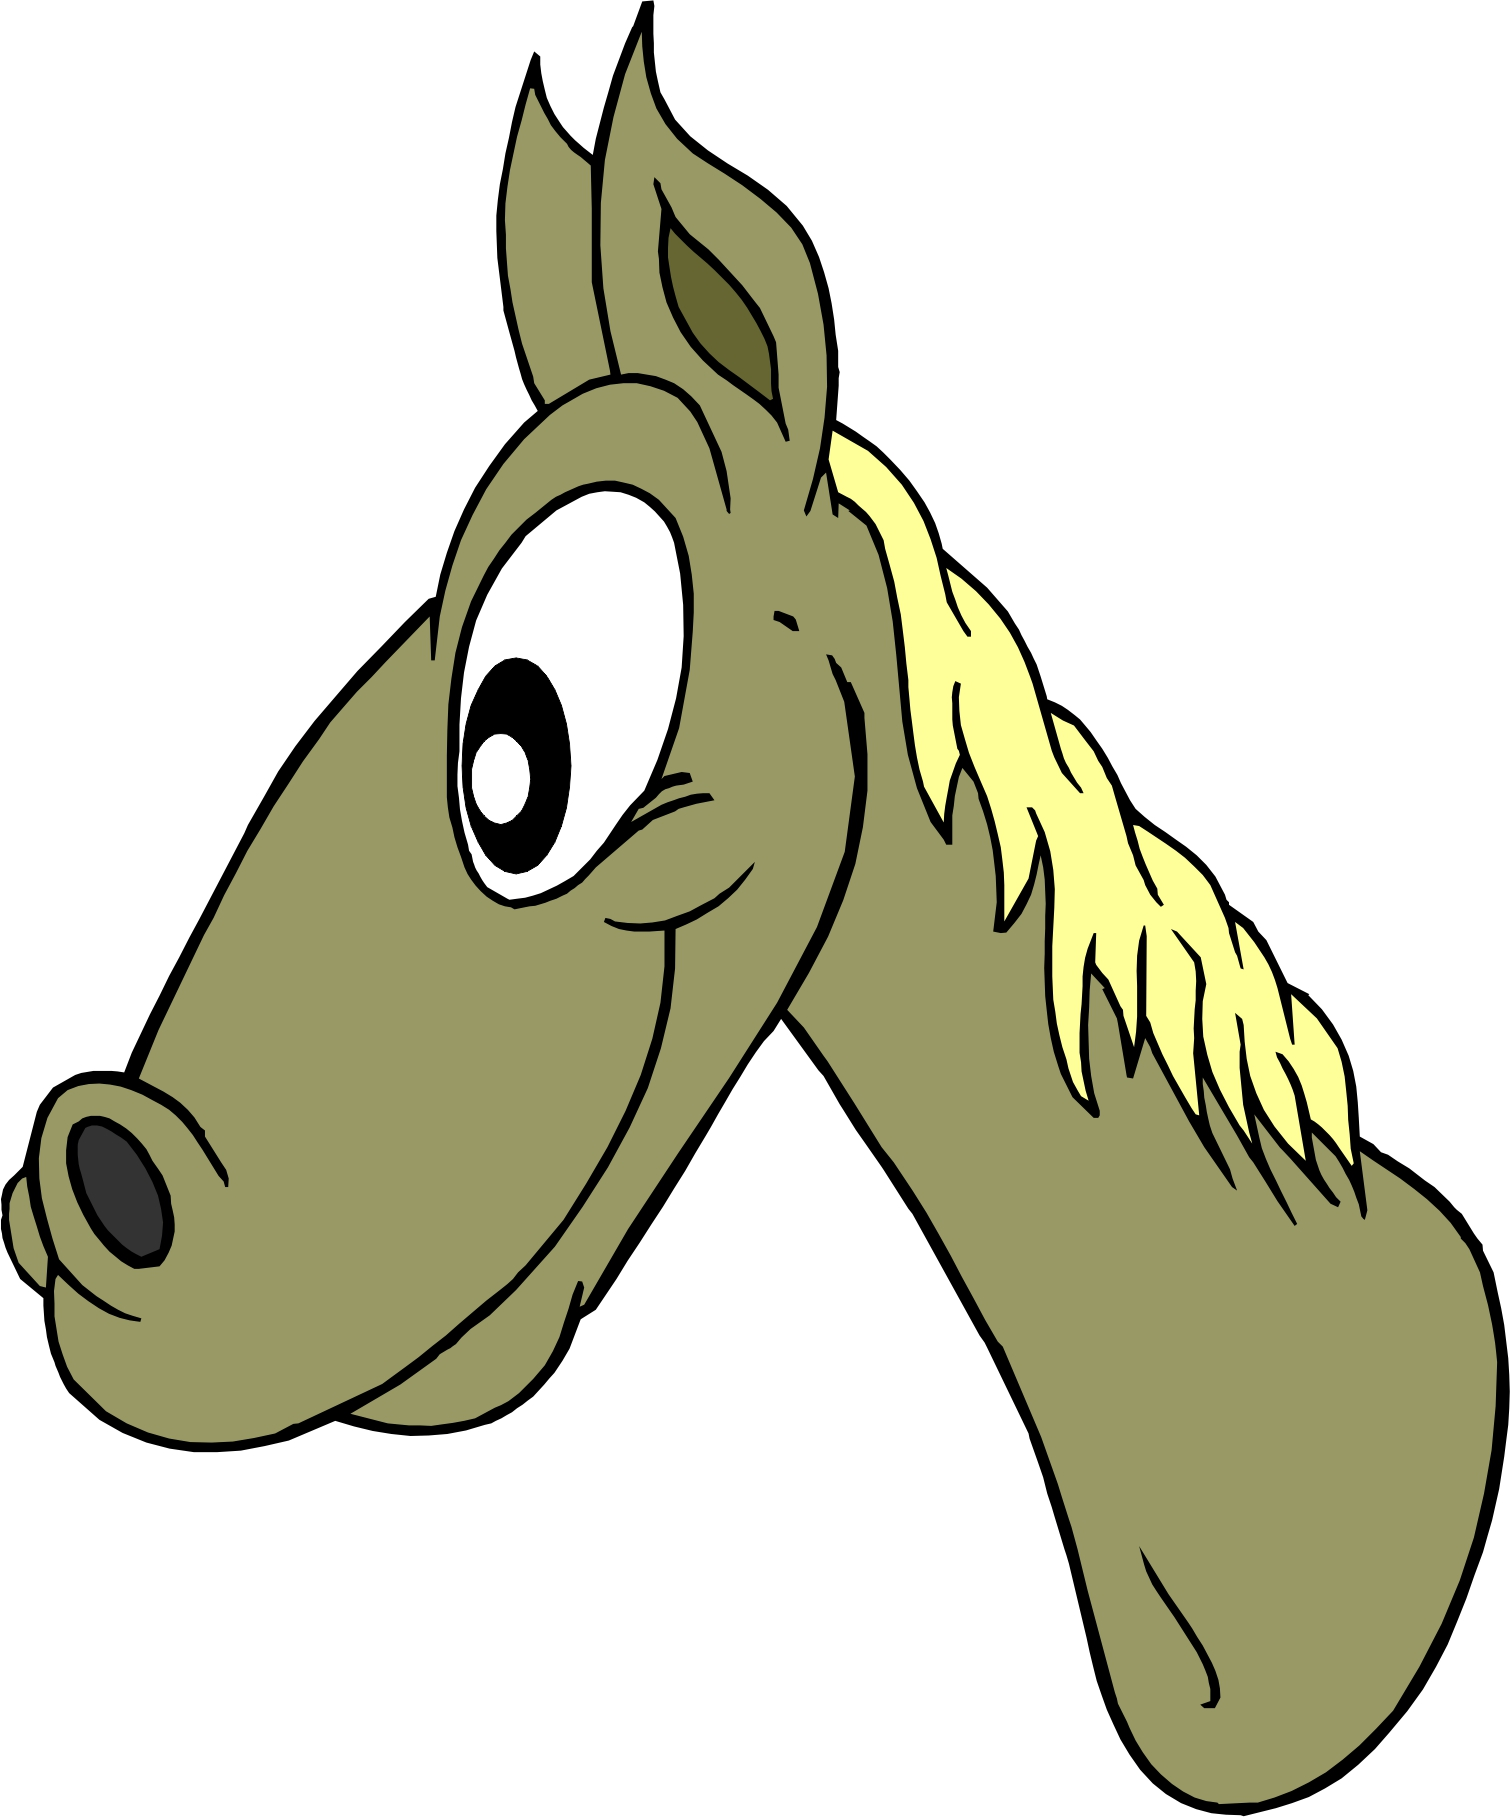 Clipart Cartoon Horses